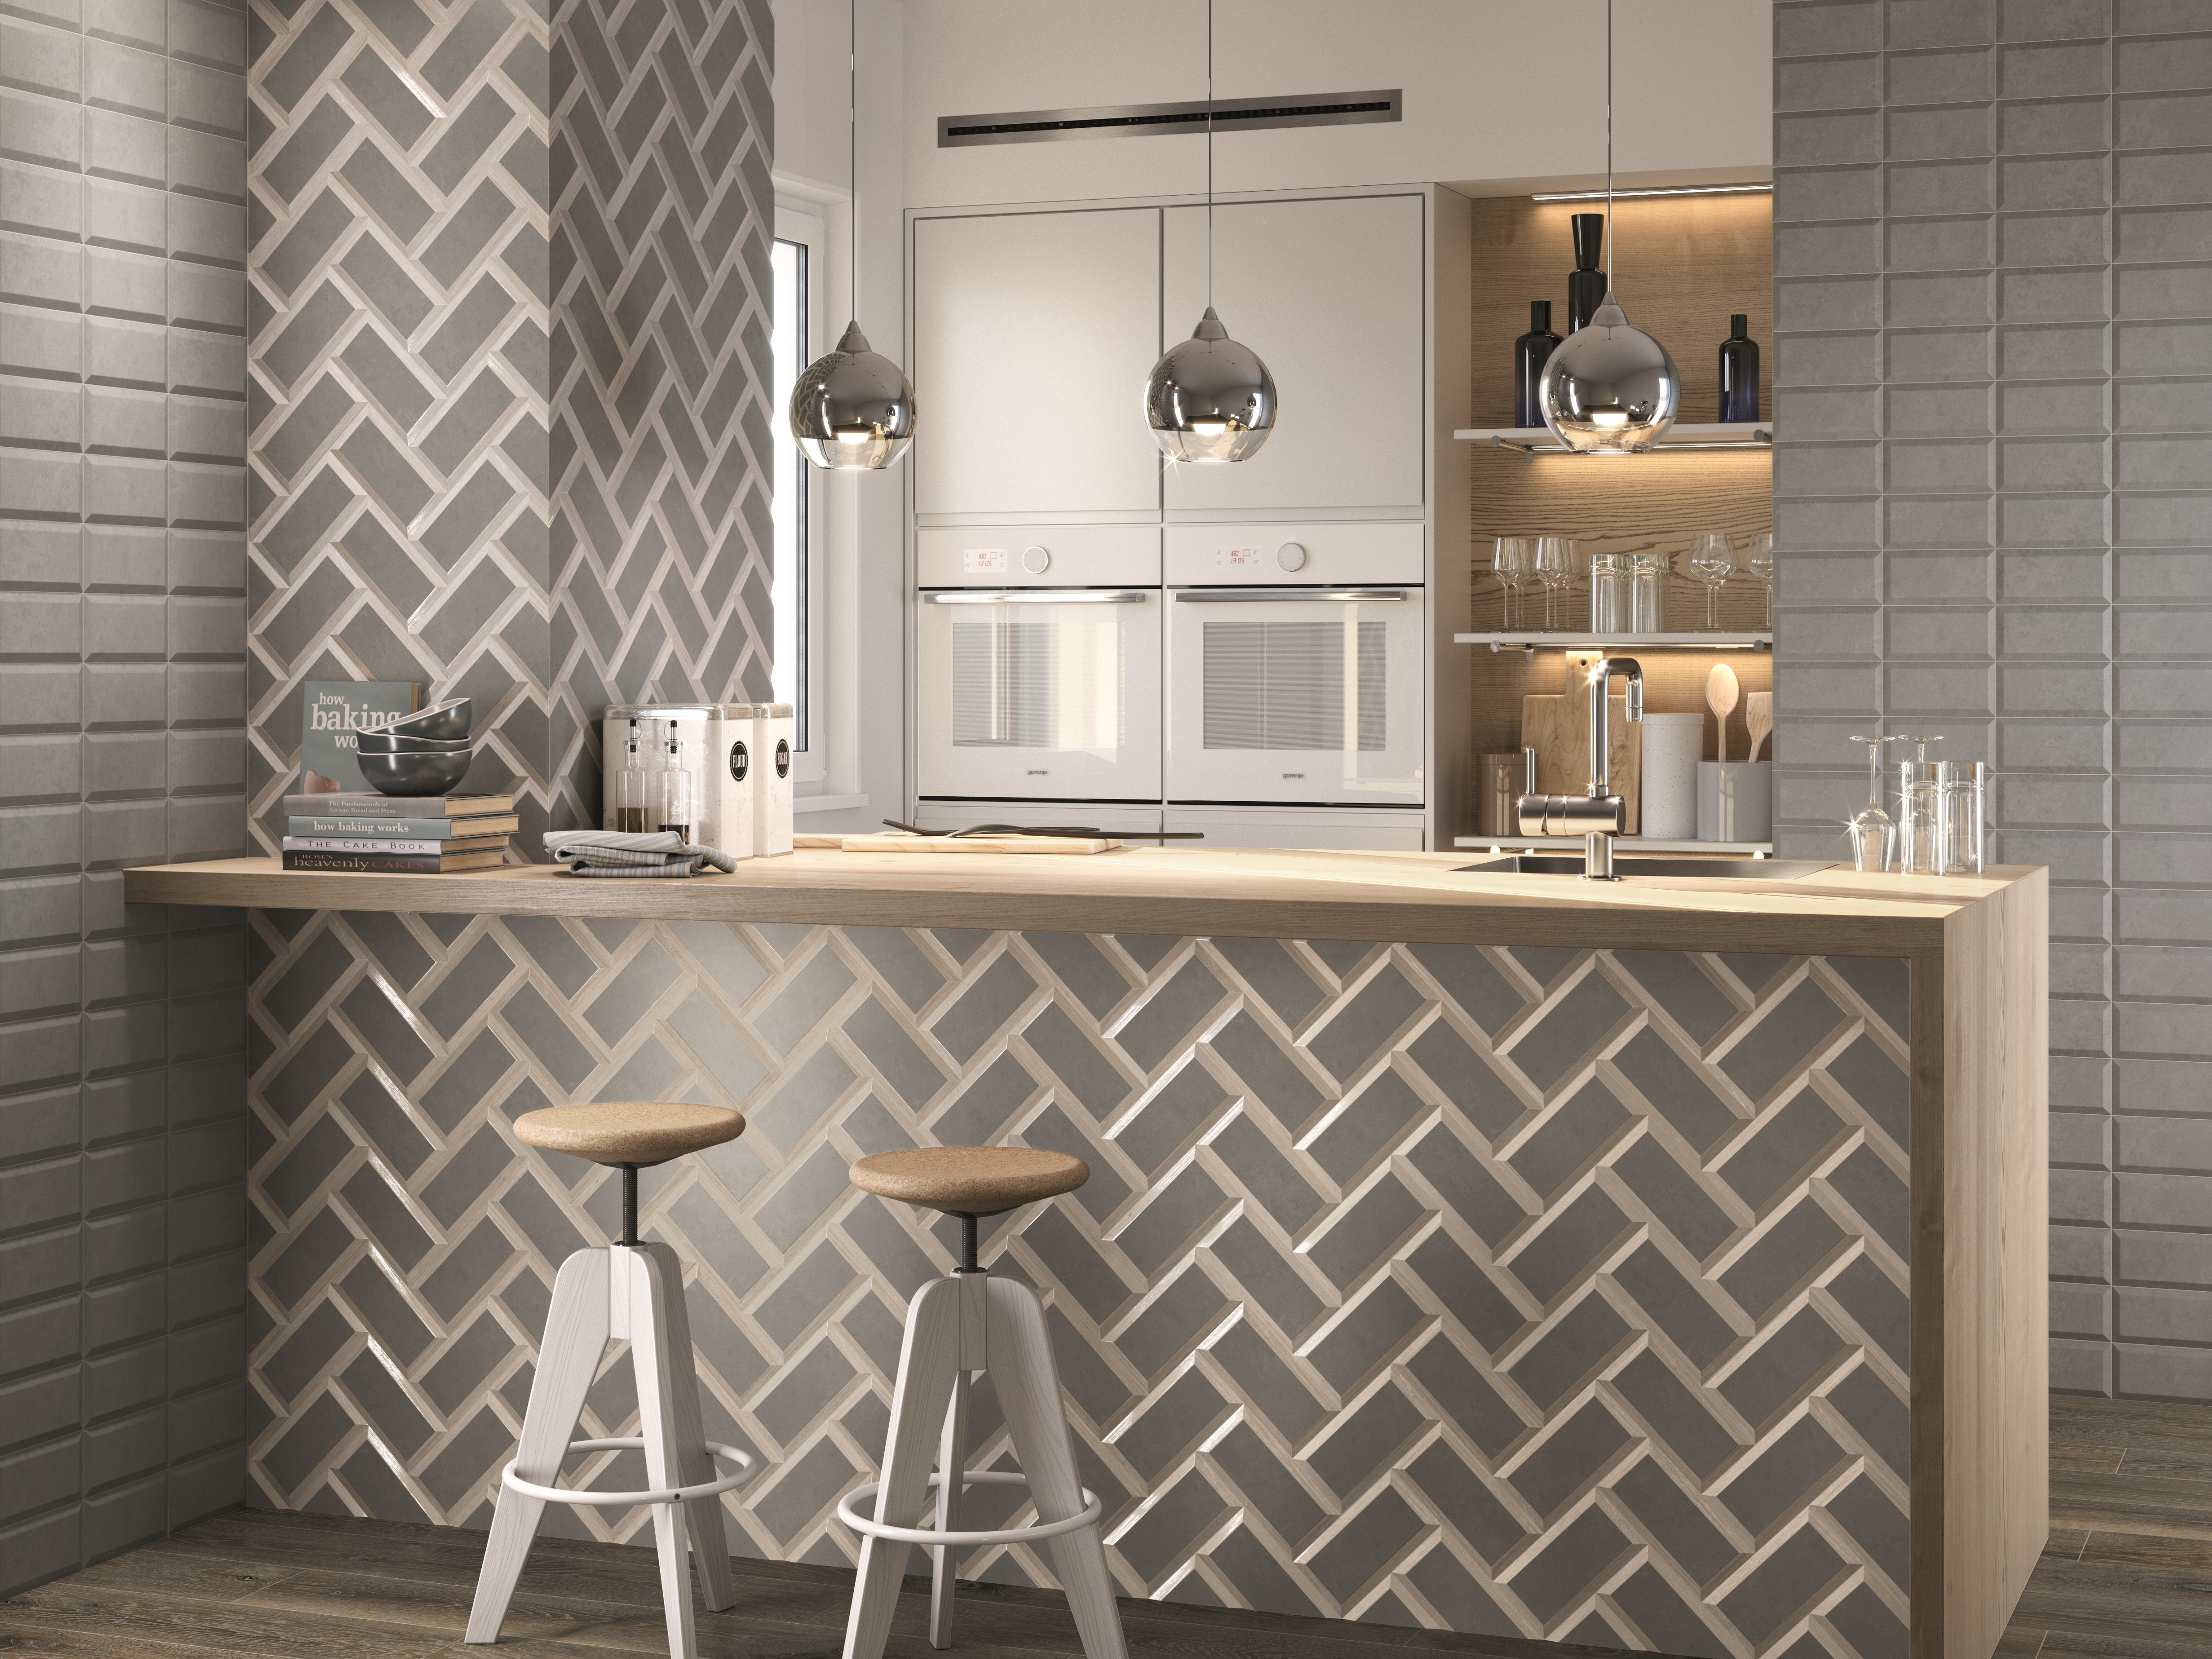 - Avenue-cement-line-cement-mix-subway-modern-miami-accent-wall